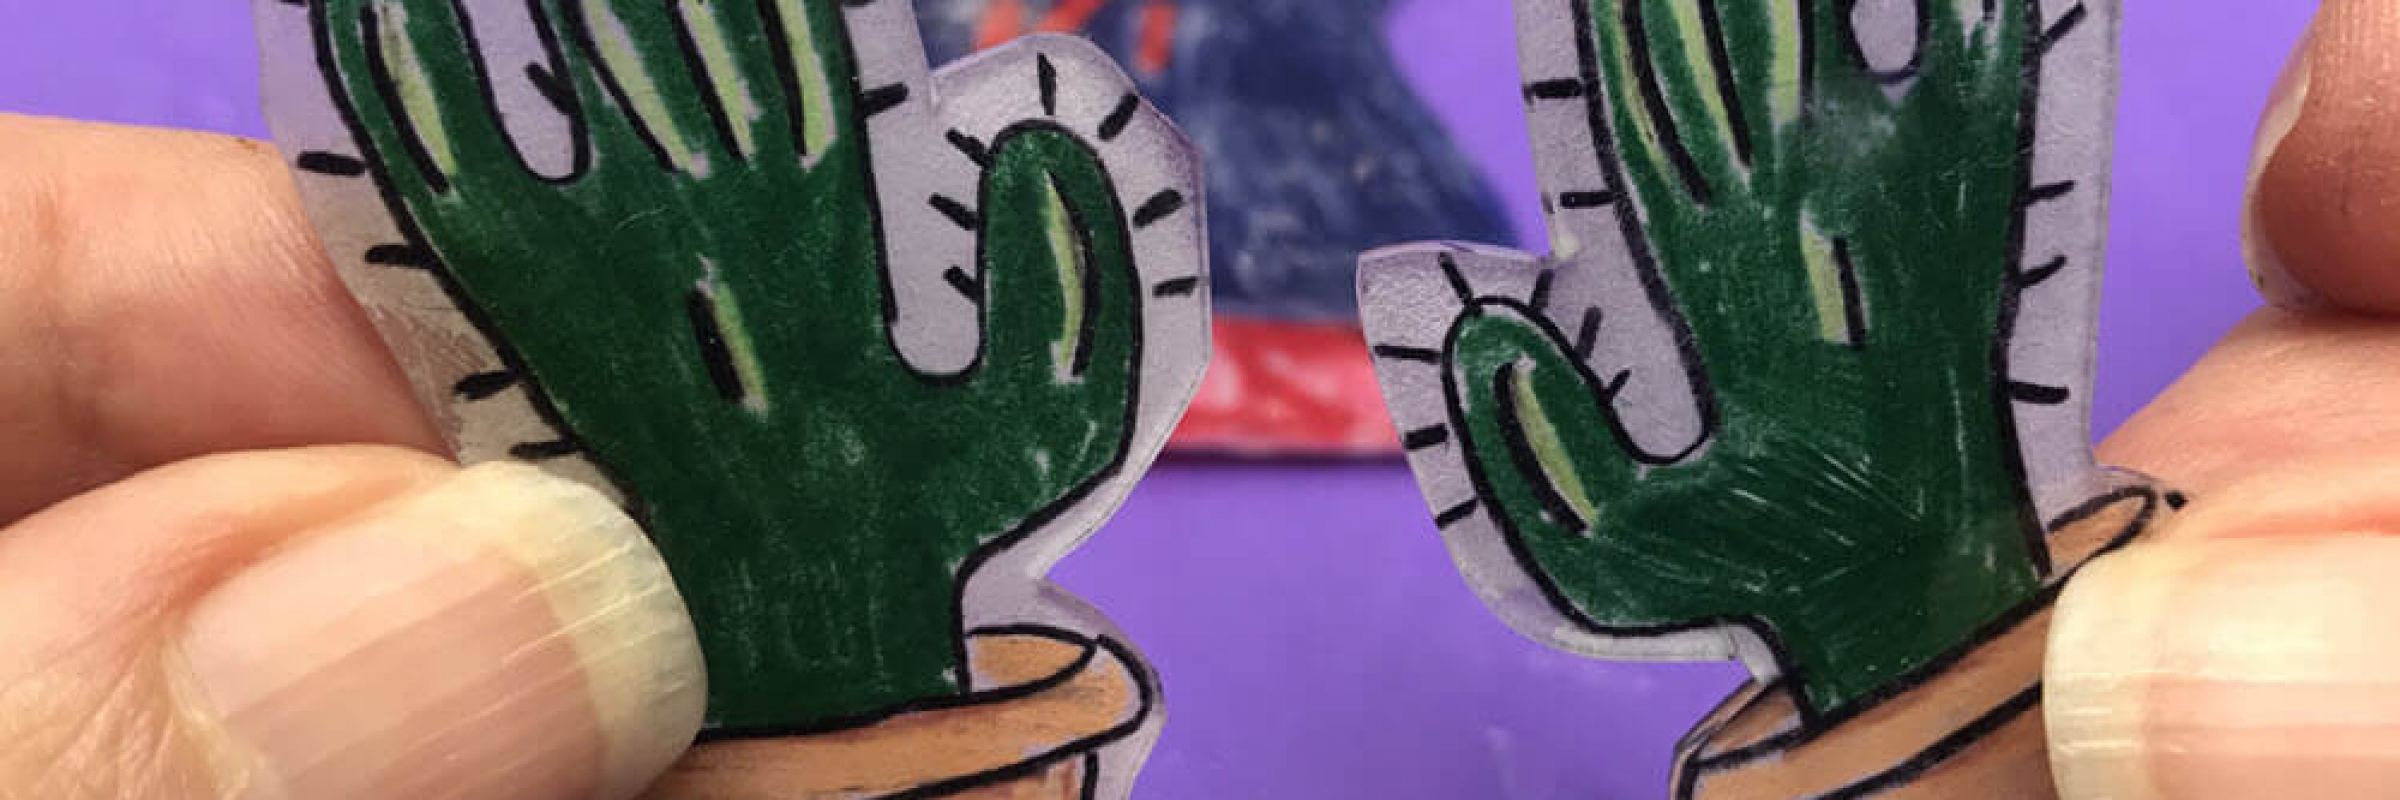 Close Up of Two Green Cactus Shrinky Dinks being held by finges with a purple background